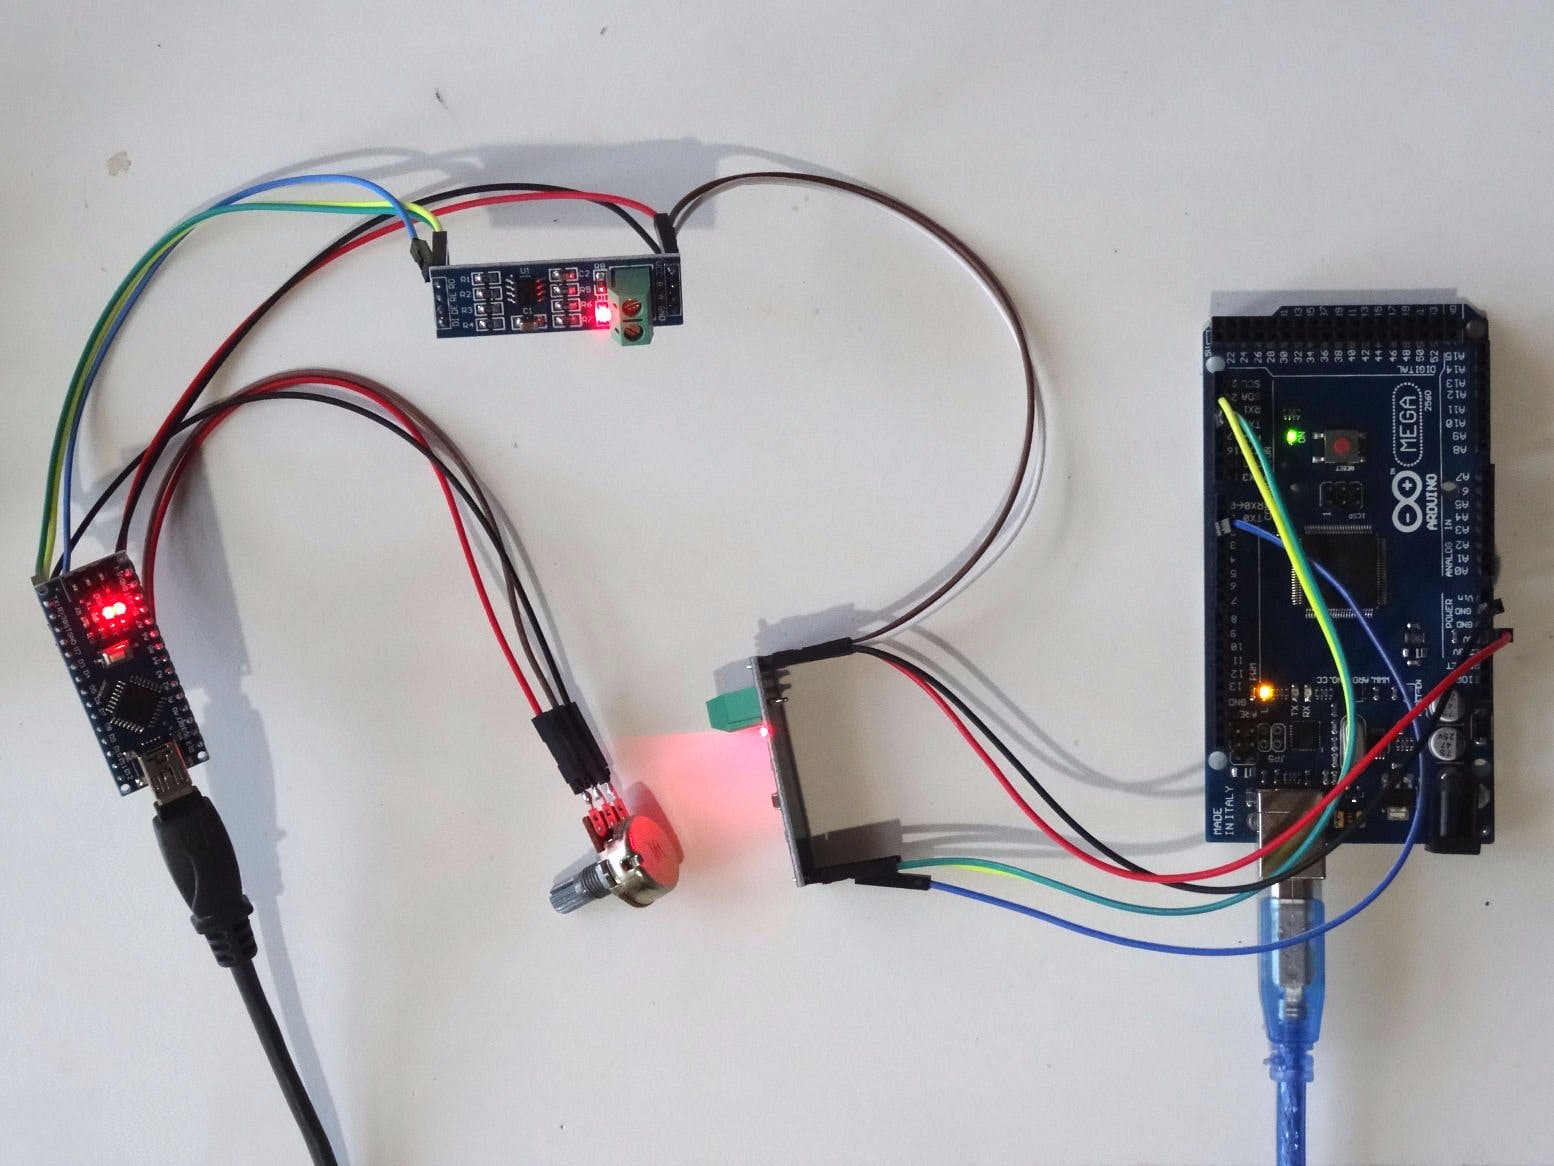 RS485 Serial Communication between Arduinos with Visuino